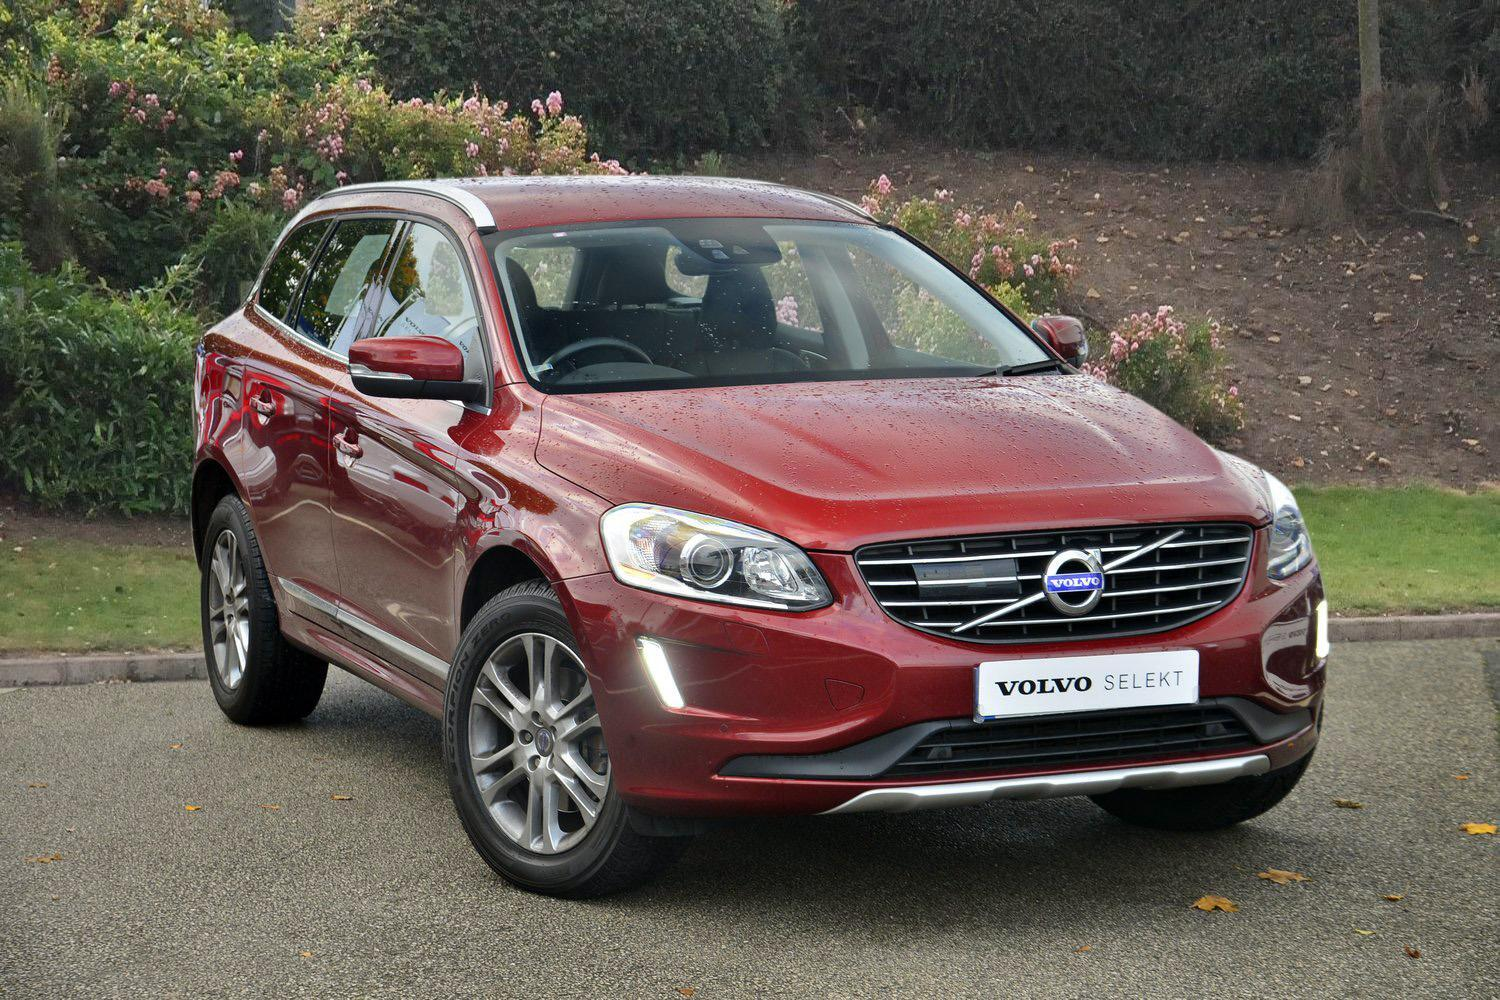 used volvo xc60 d4 181 se lux nav 5dr geartronic diesel. Black Bedroom Furniture Sets. Home Design Ideas